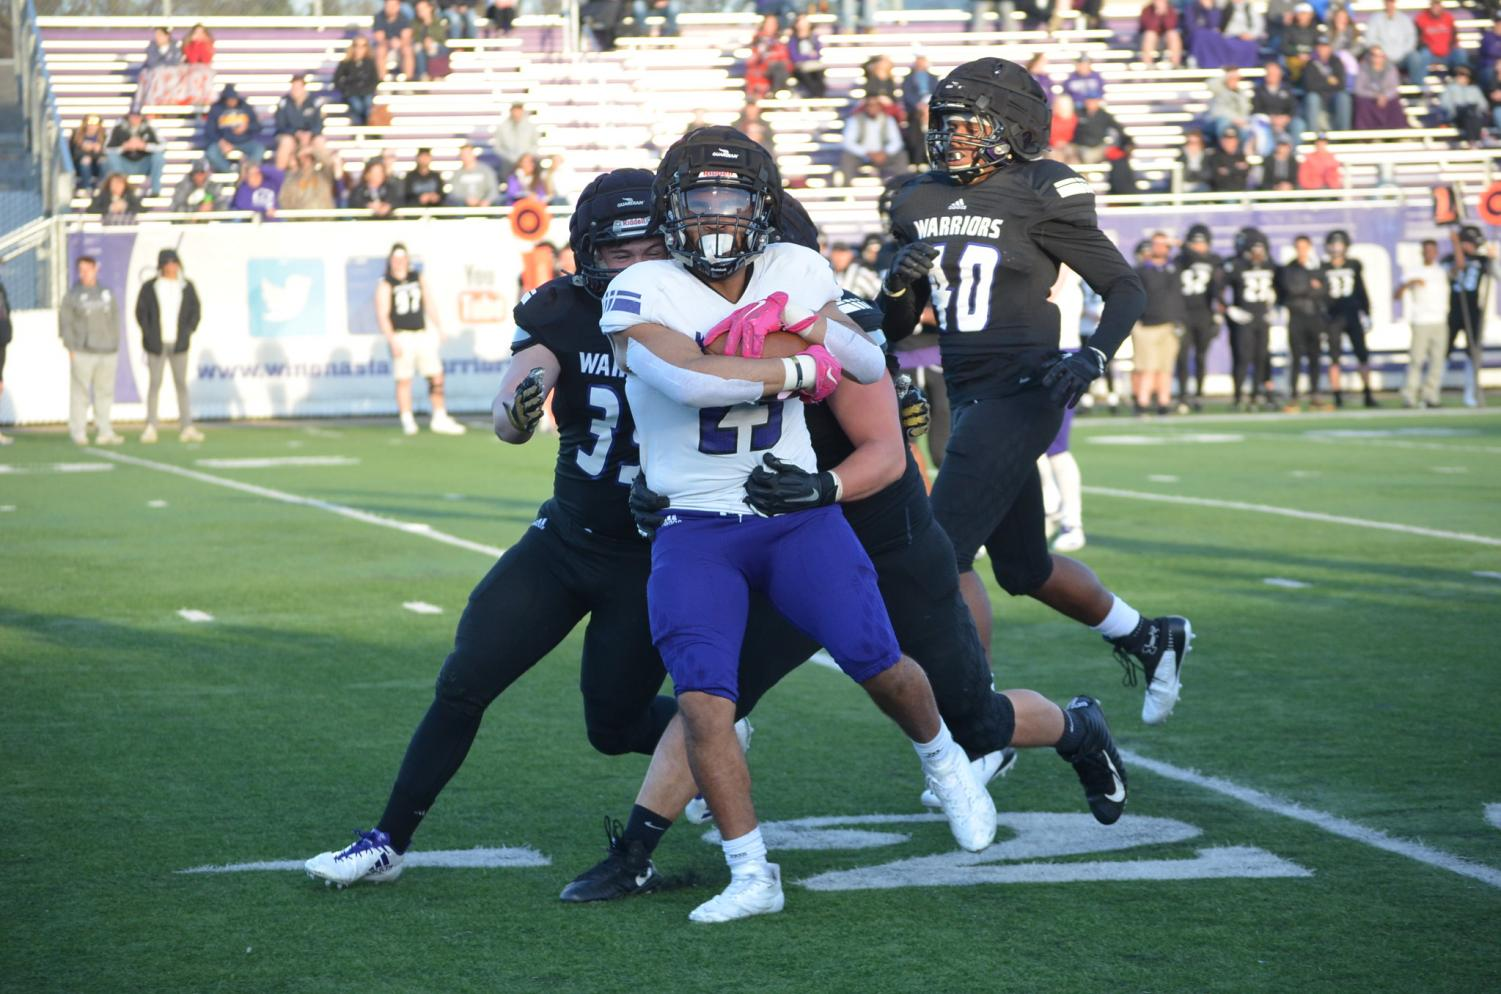 Sophomore running back Sam Santiago-Lloyd attempts to move the play down field during the spring game on Friday, April 26 in the Altra Credit Federal Union Stadium. Santiago-Lloyd played for the offensive team, loosing to the defensive team 81-44.